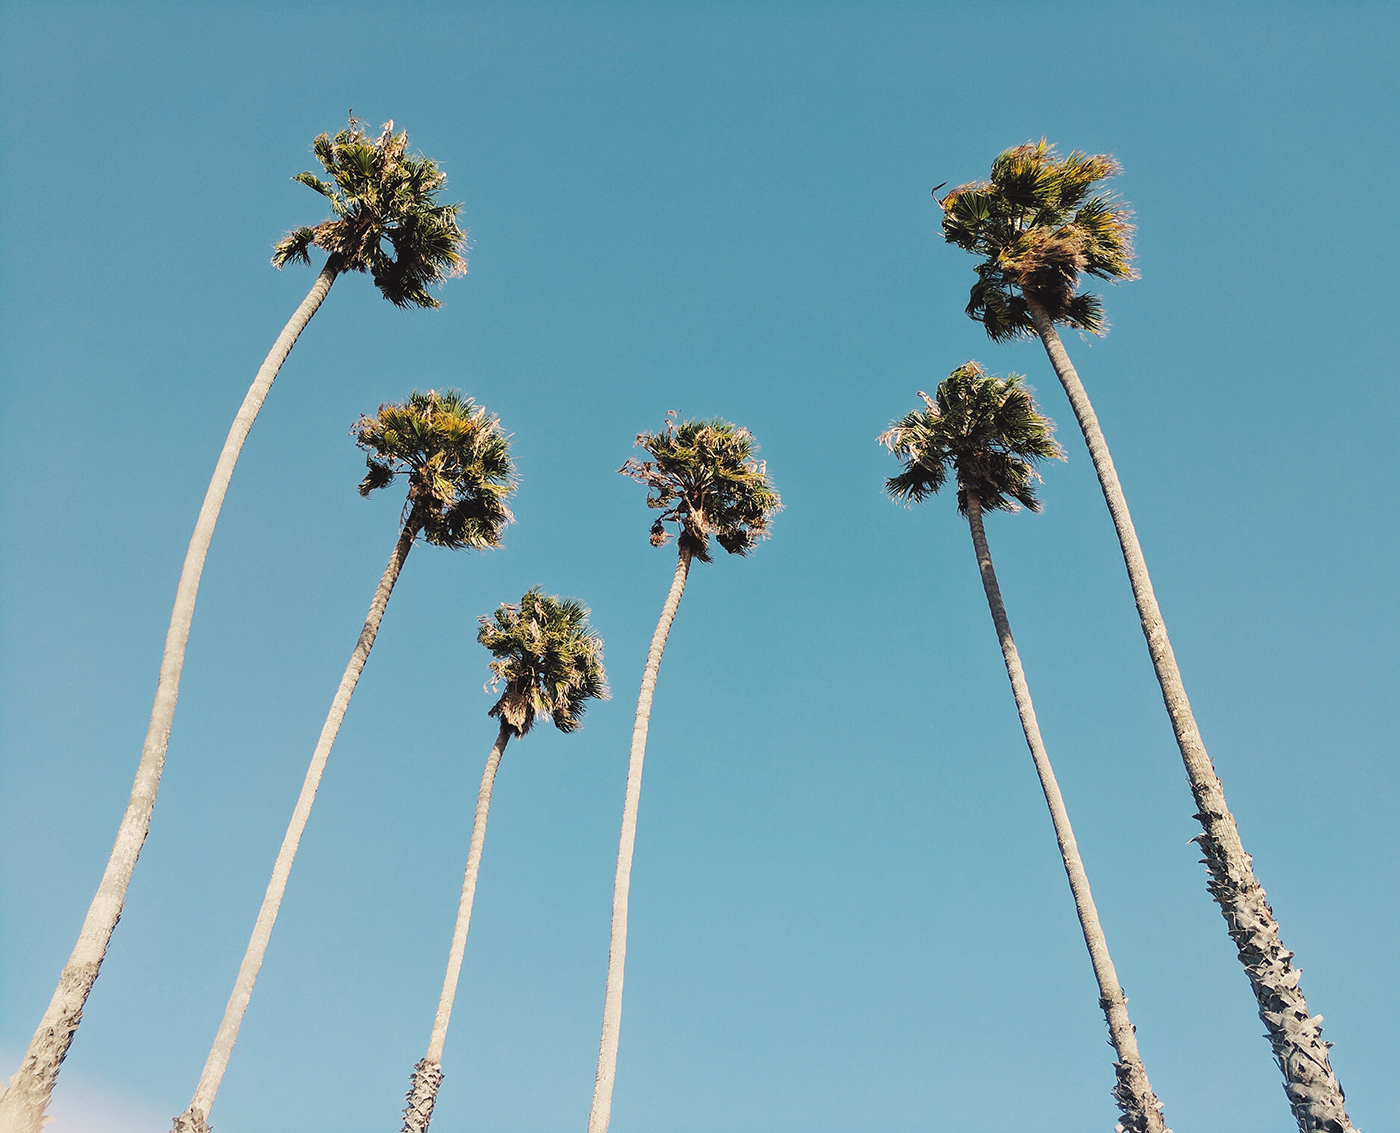 Wallpaper of the Week - California Palm Trees